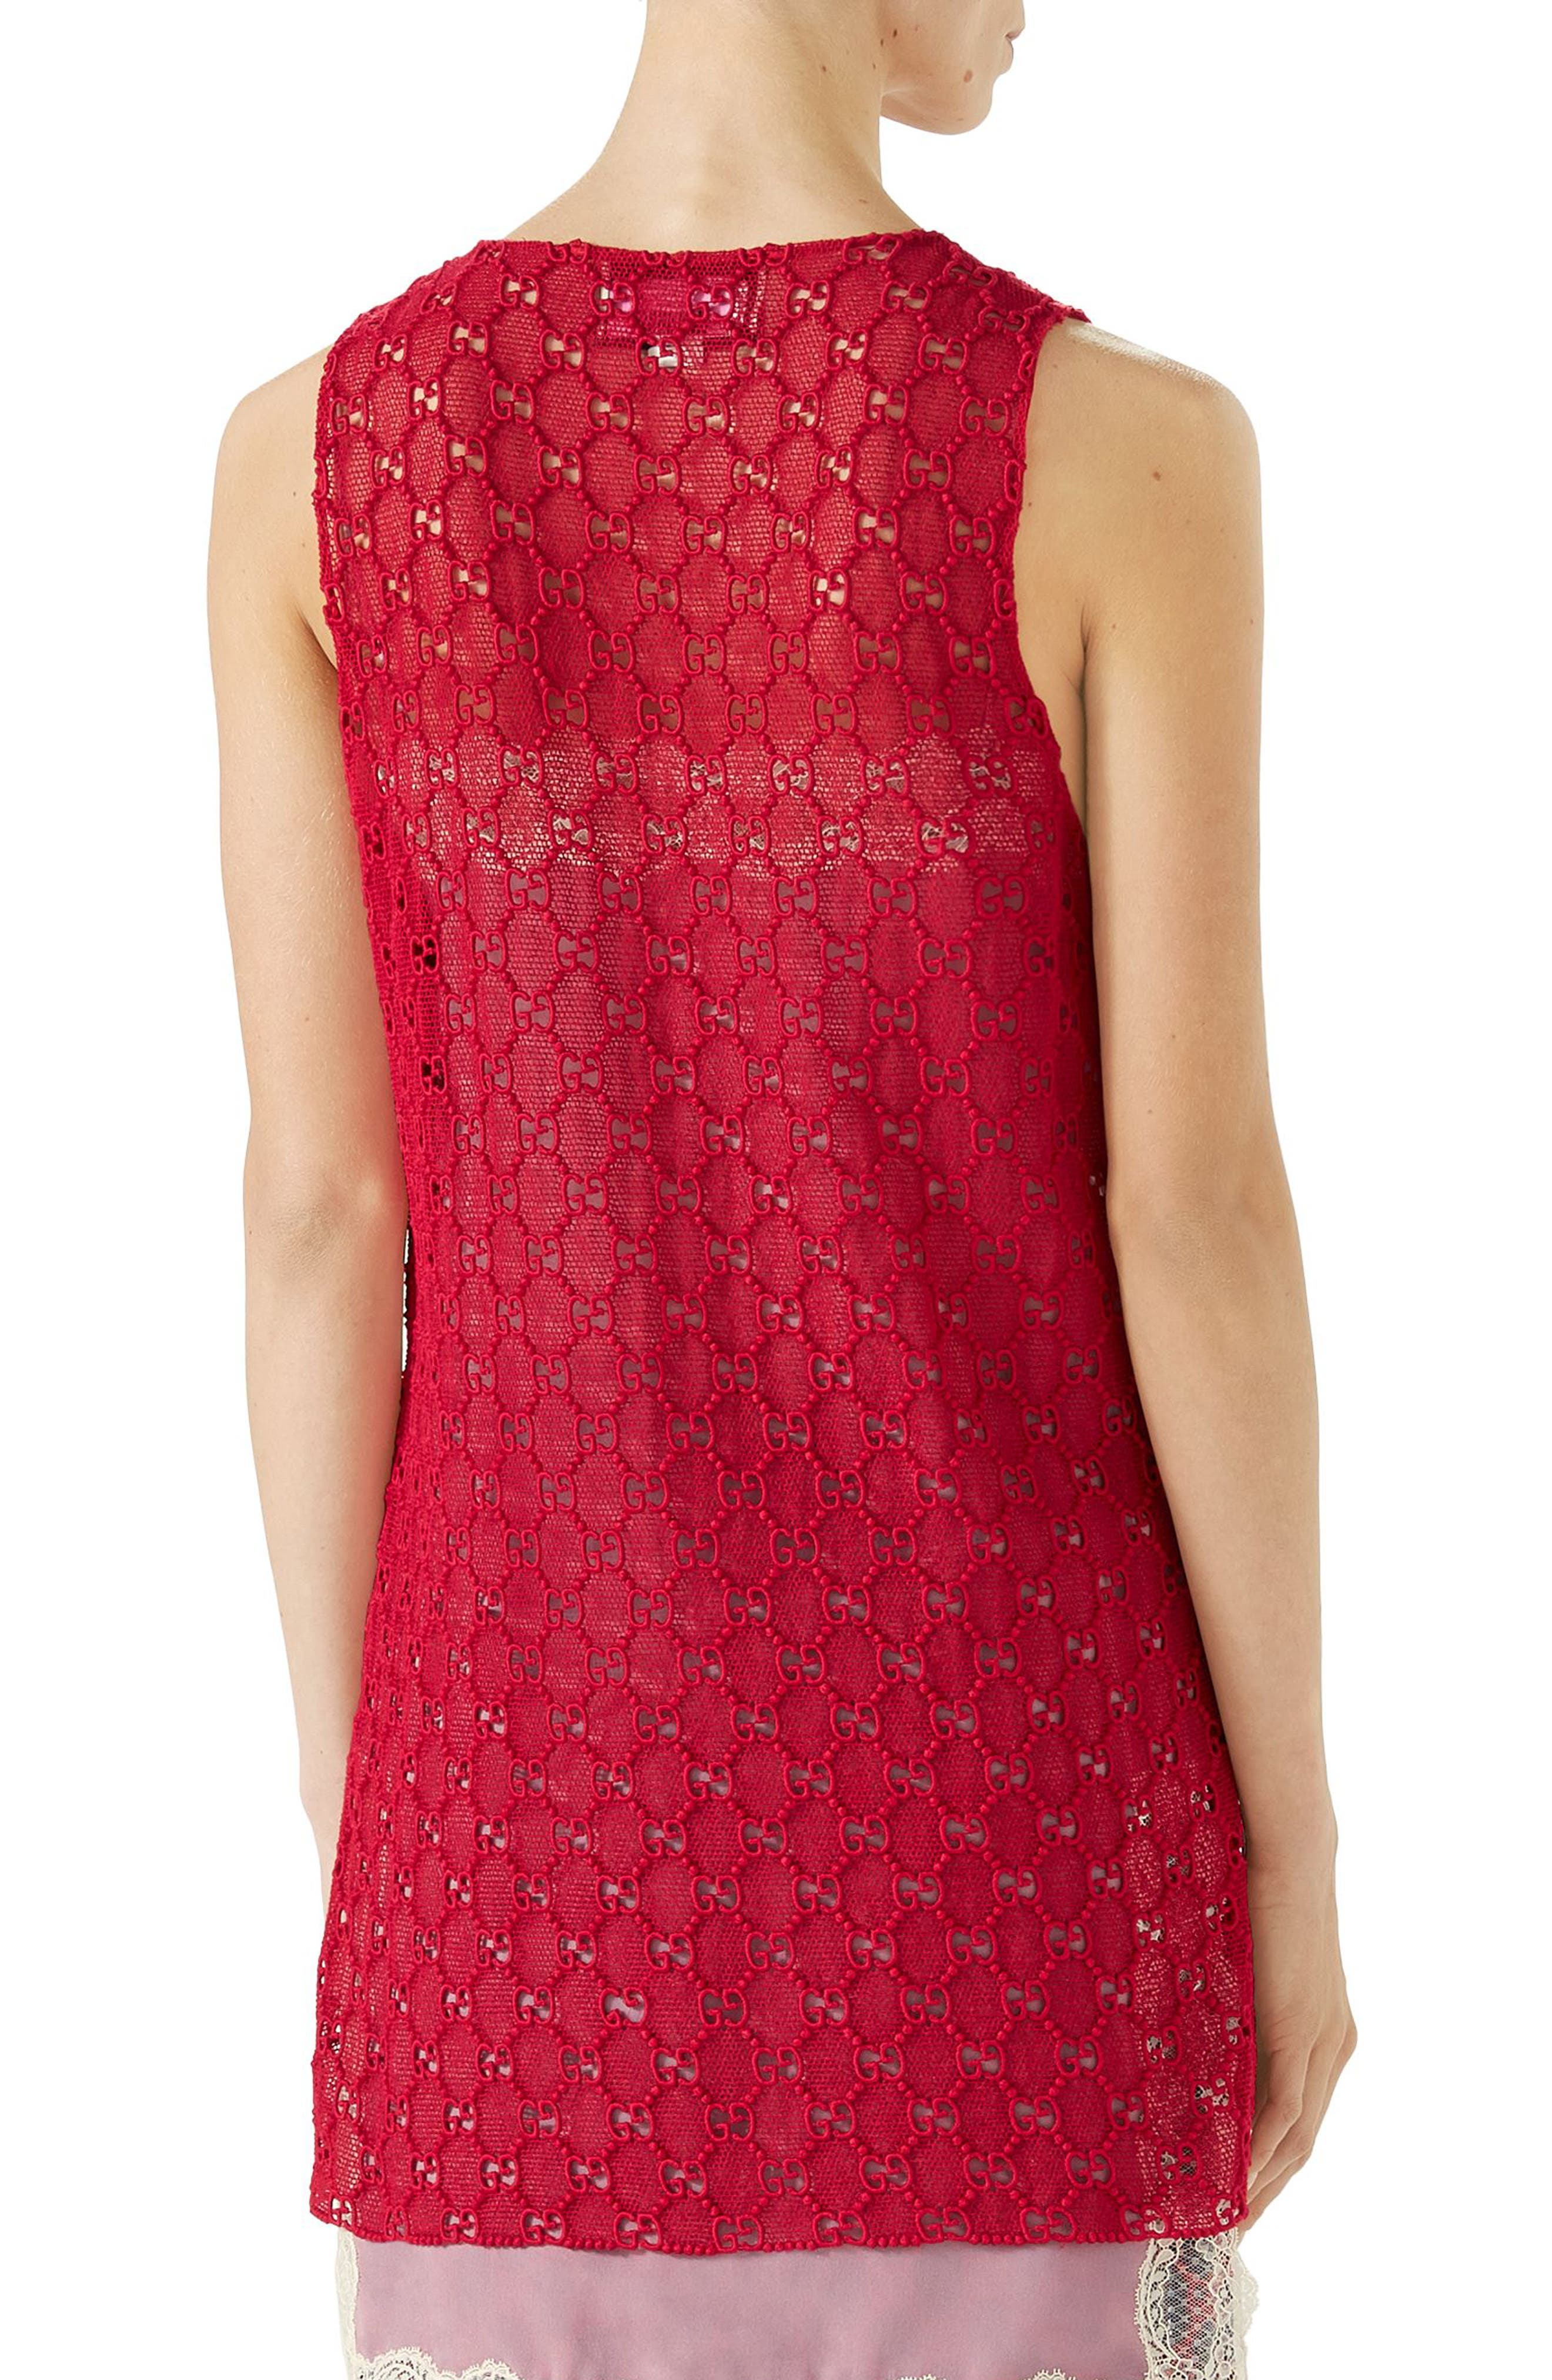 GG Macramé Top,                             Alternate thumbnail 2, color,                             Heather Red/ Ortensia